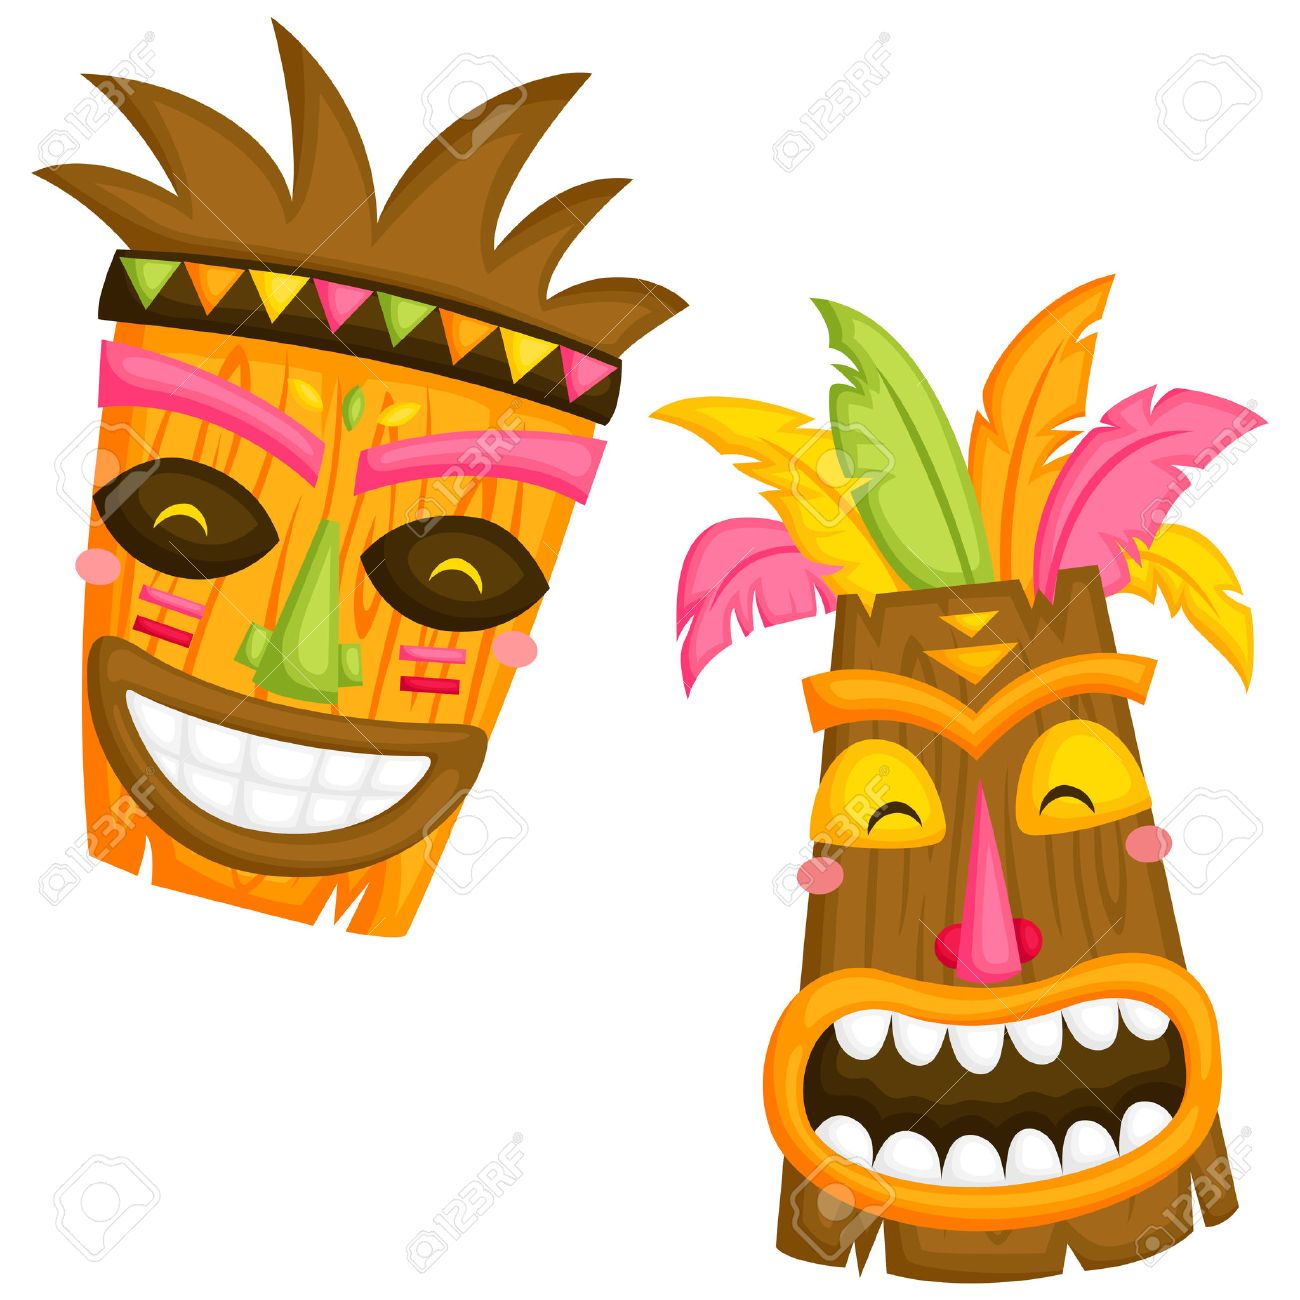 luau mask royalty free cliparts vectors and stock illustration